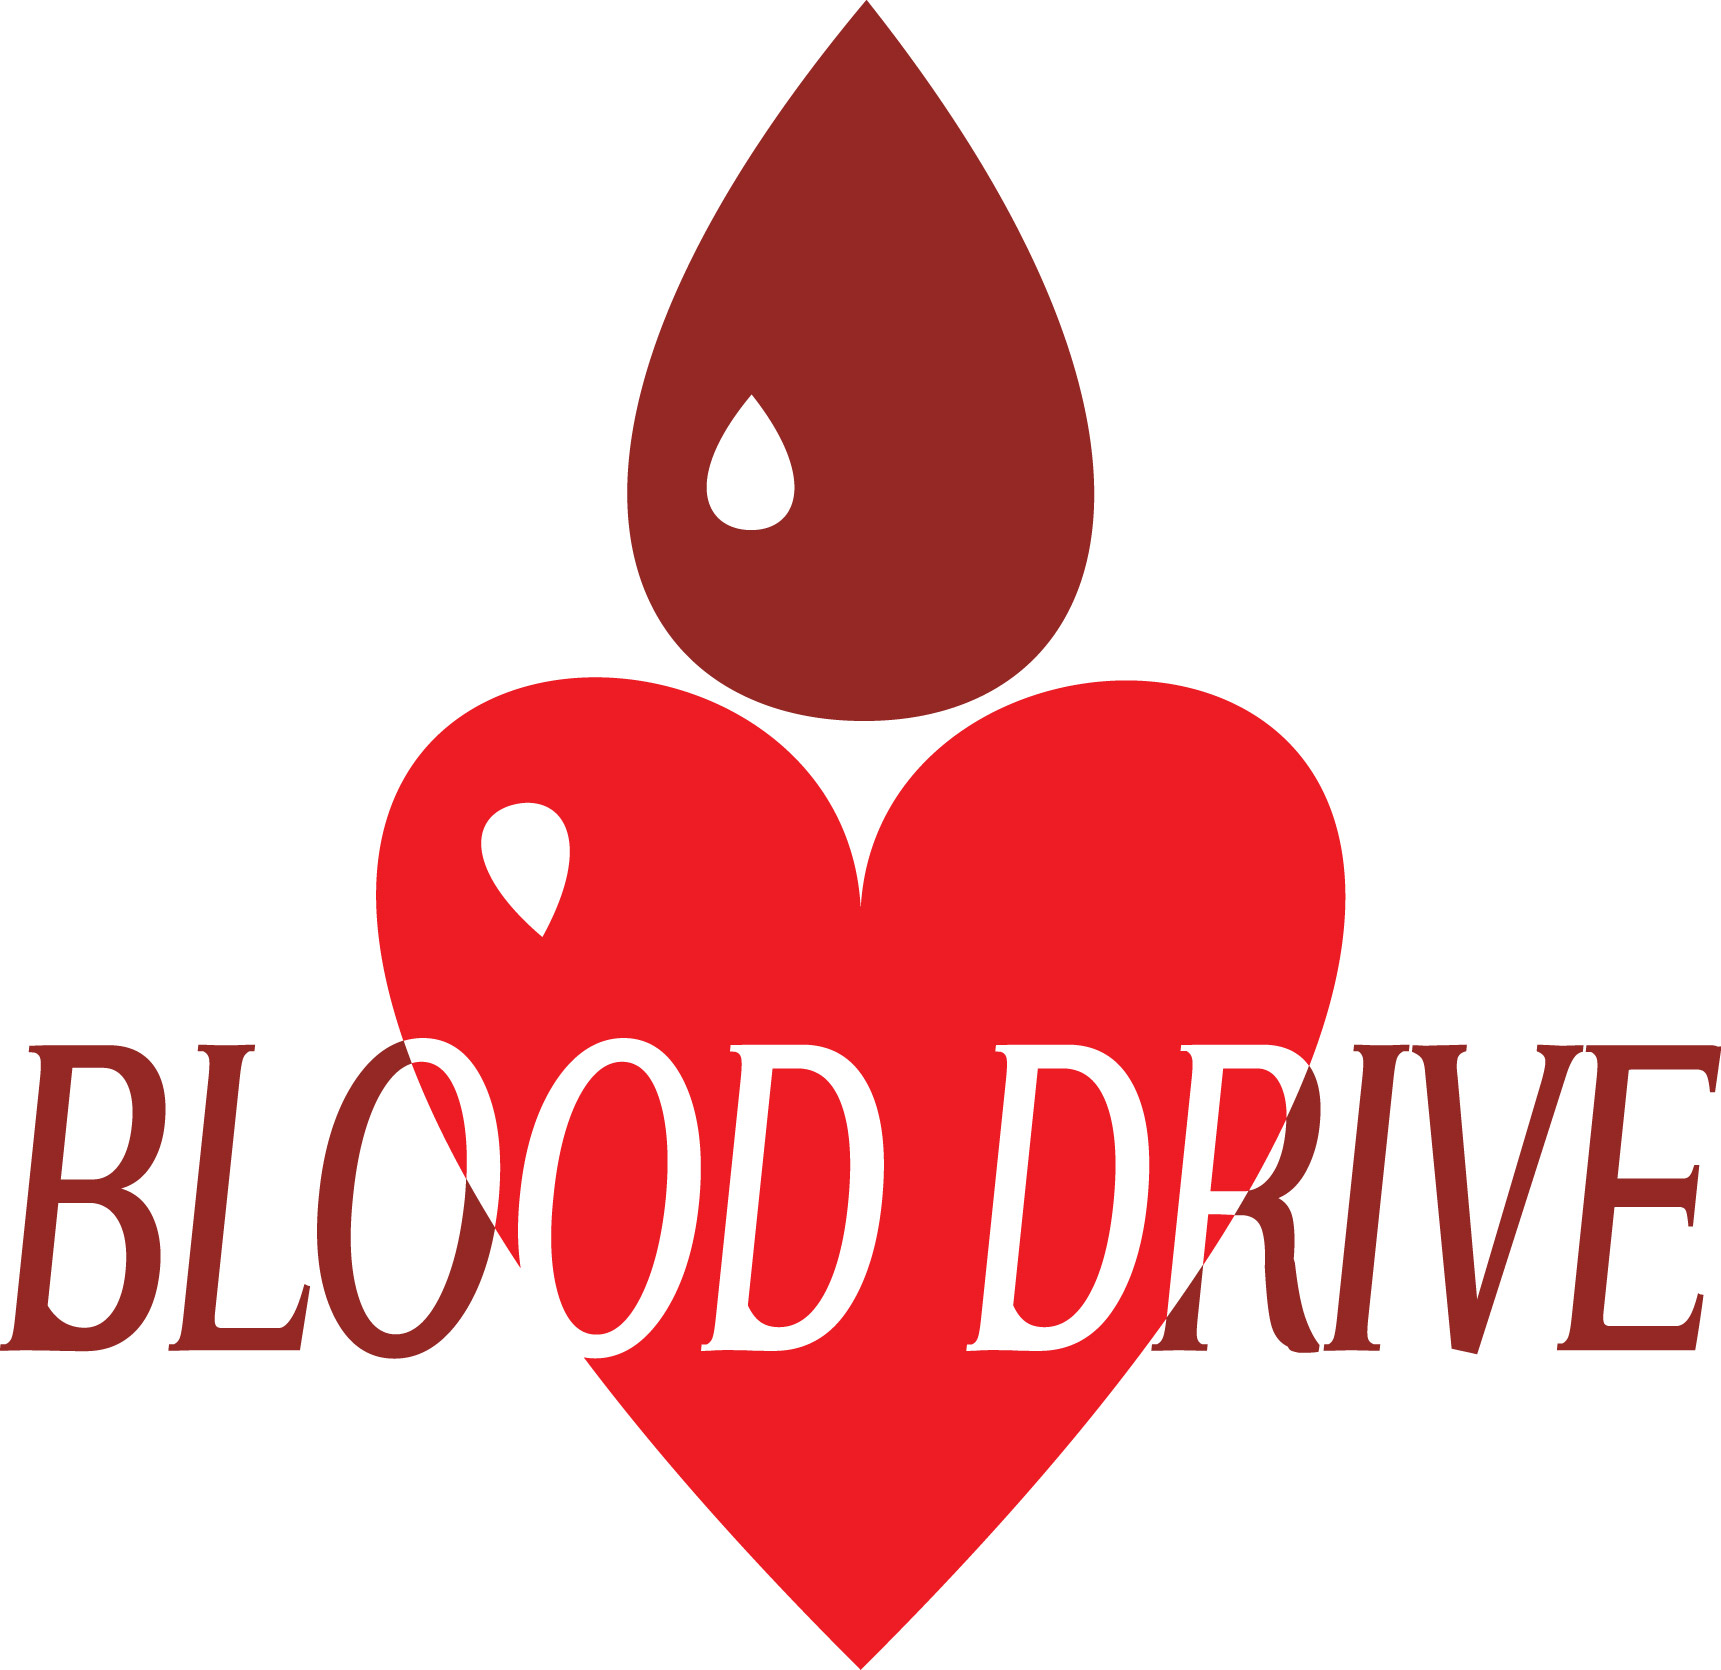 blood drive We rely on businesses, community groups, schools and places of worship to sponsor blood drives and we're seeking more blood drive opportunities every day.